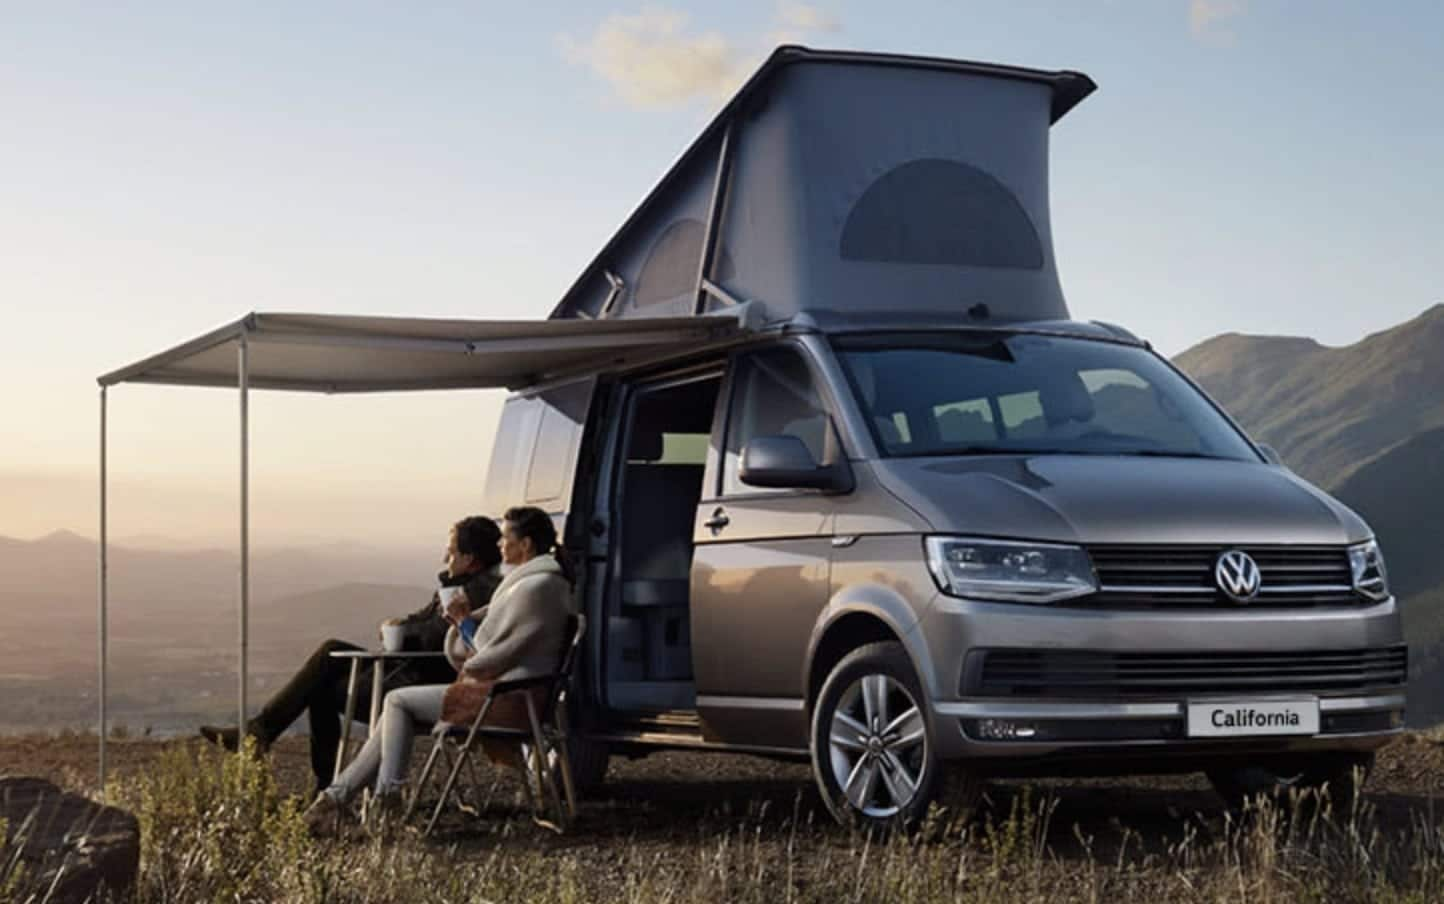 Vw California Ocean Dsg Swiss Vans